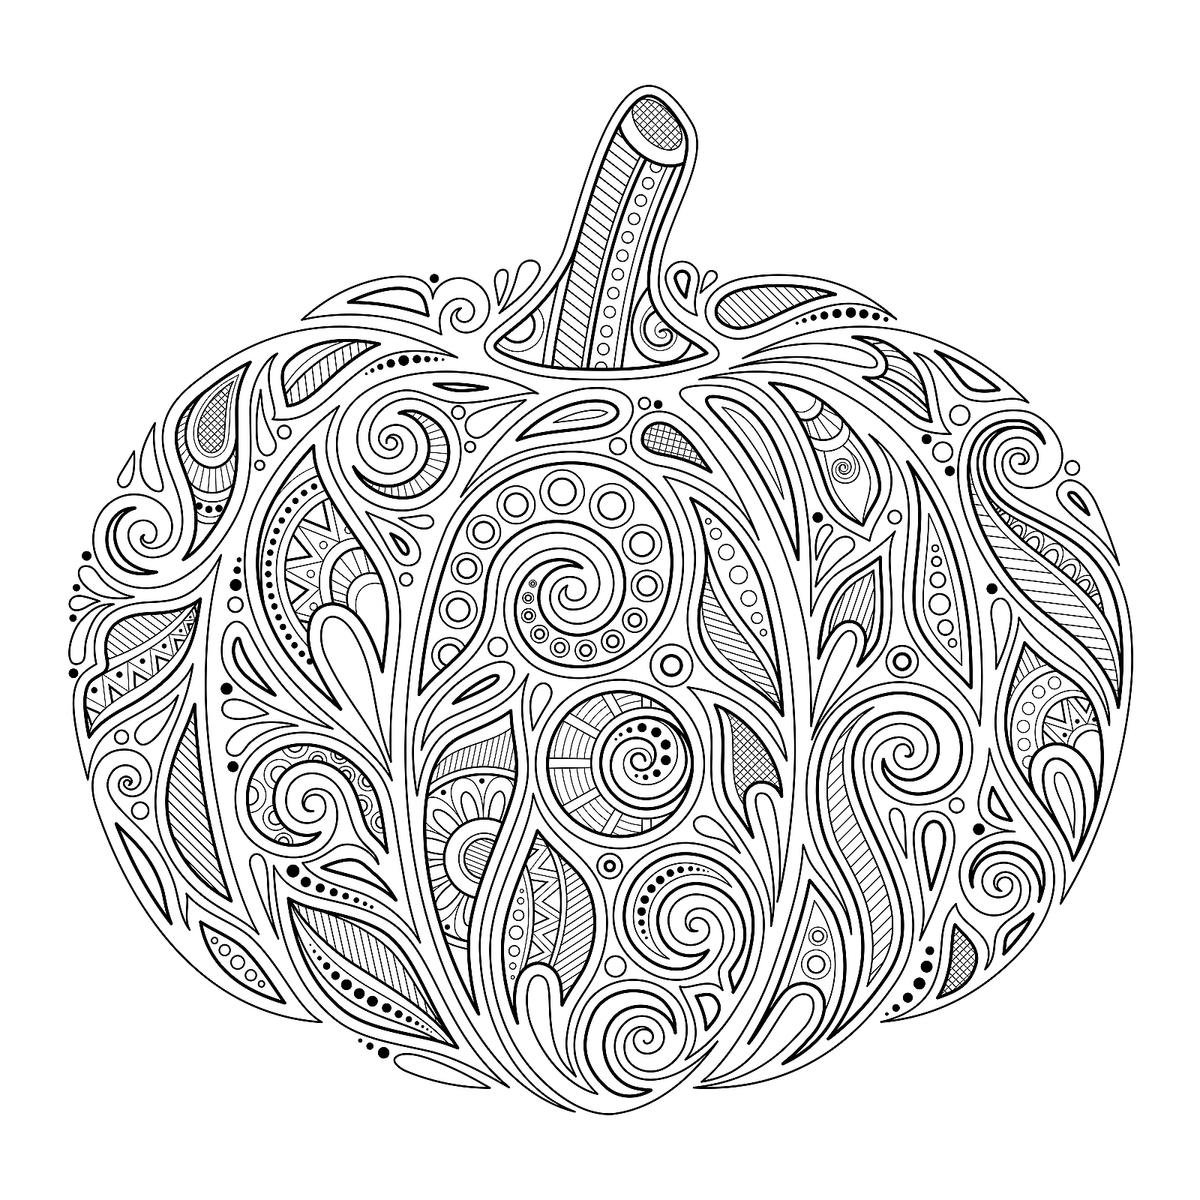 coloring pages halloween halloween coloring pages june 2012 pages halloween coloring